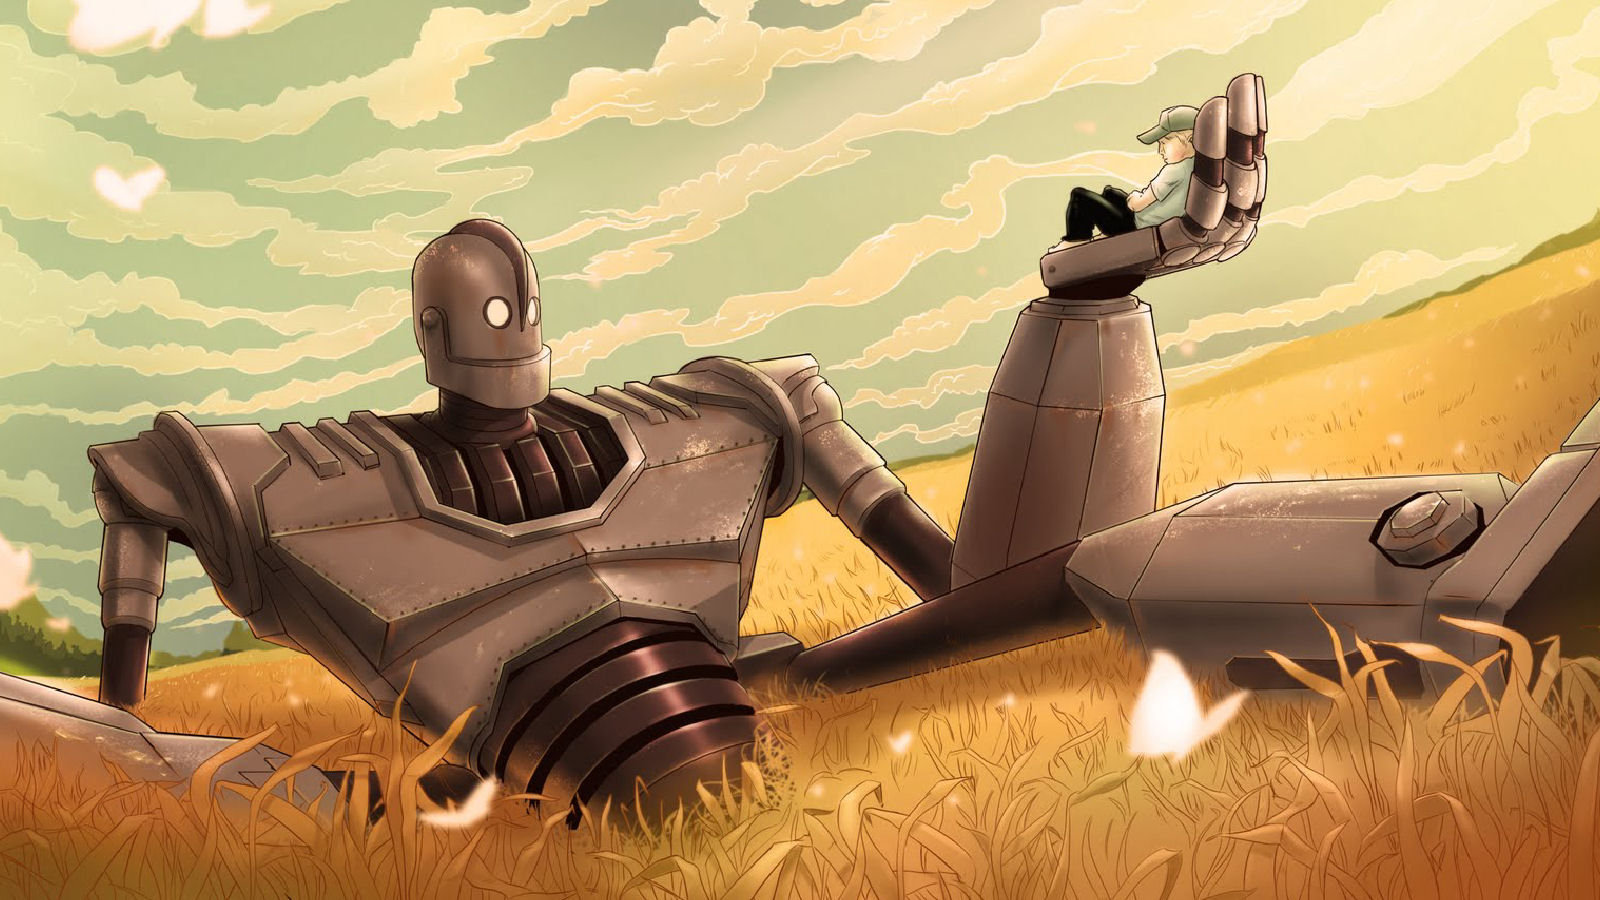 Robot Wallpapers 1600x900